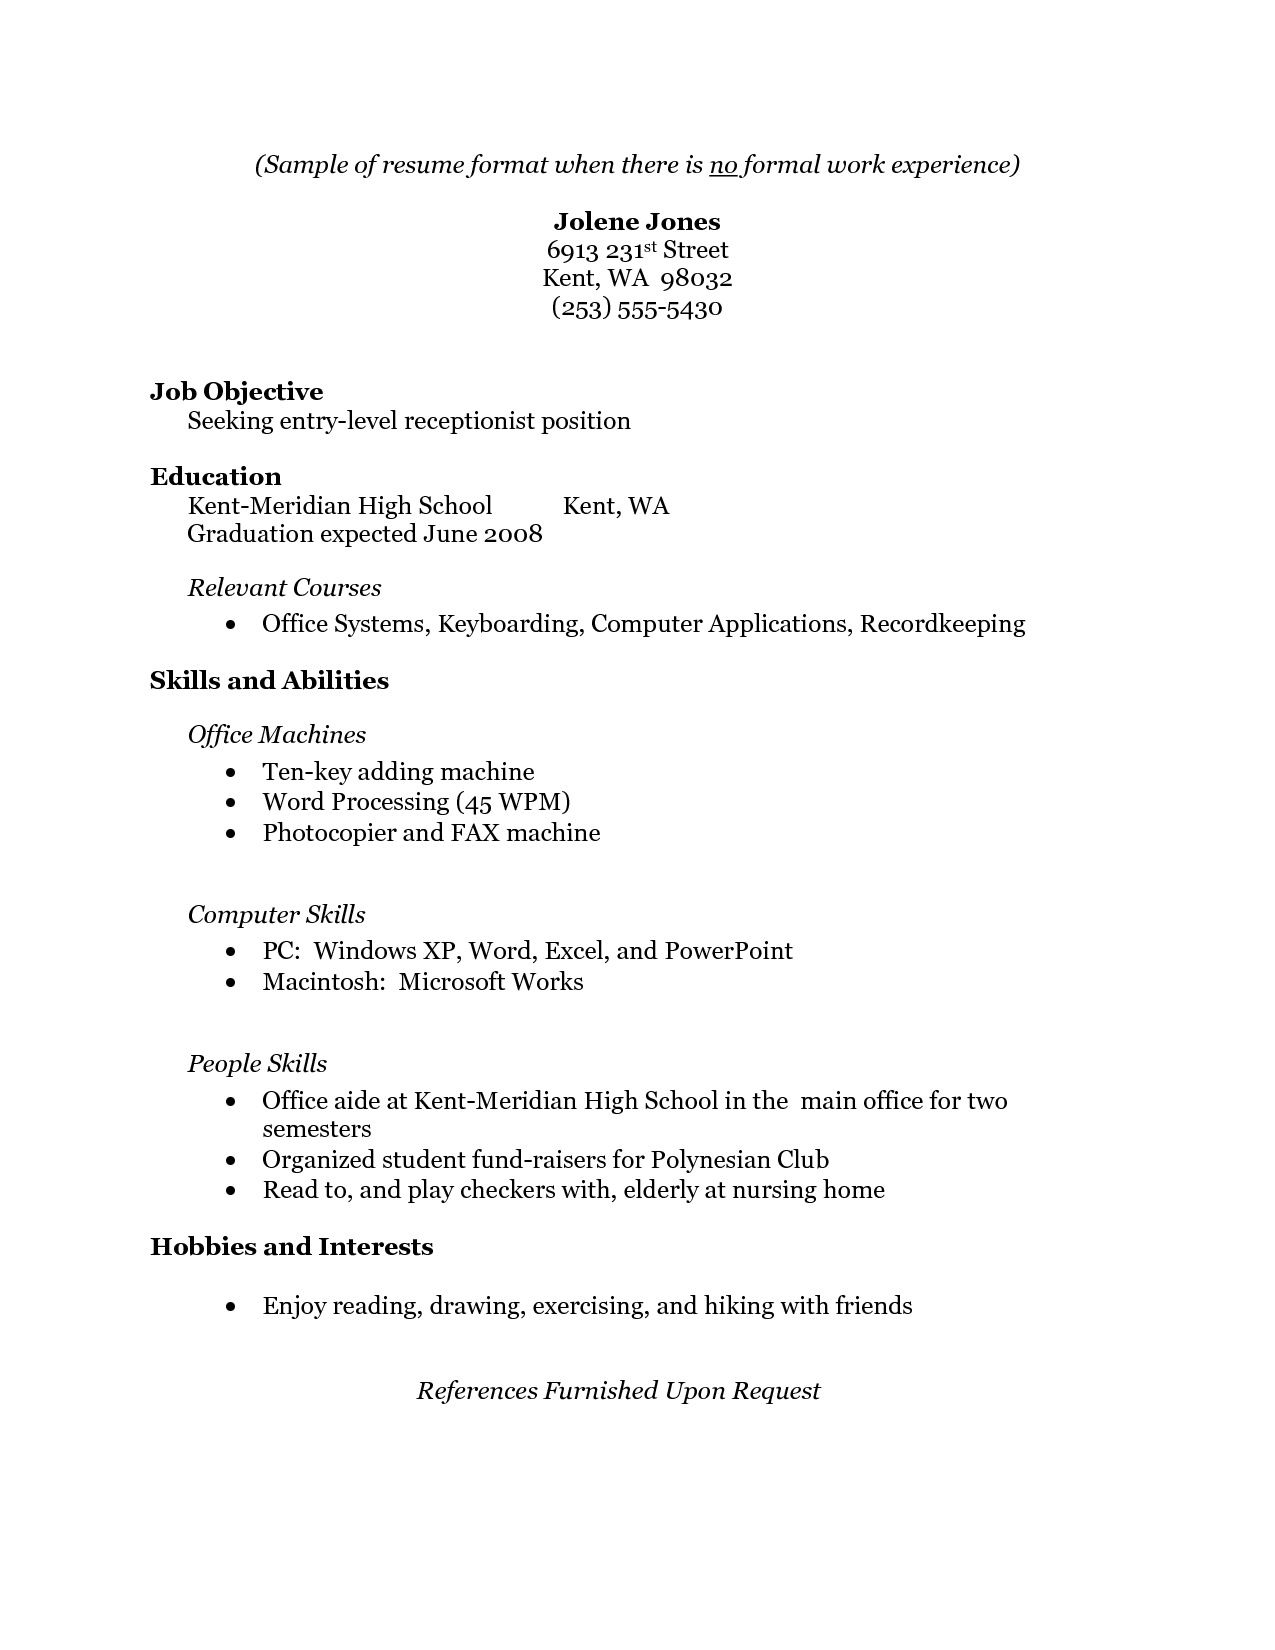 Resume Examples With No Education